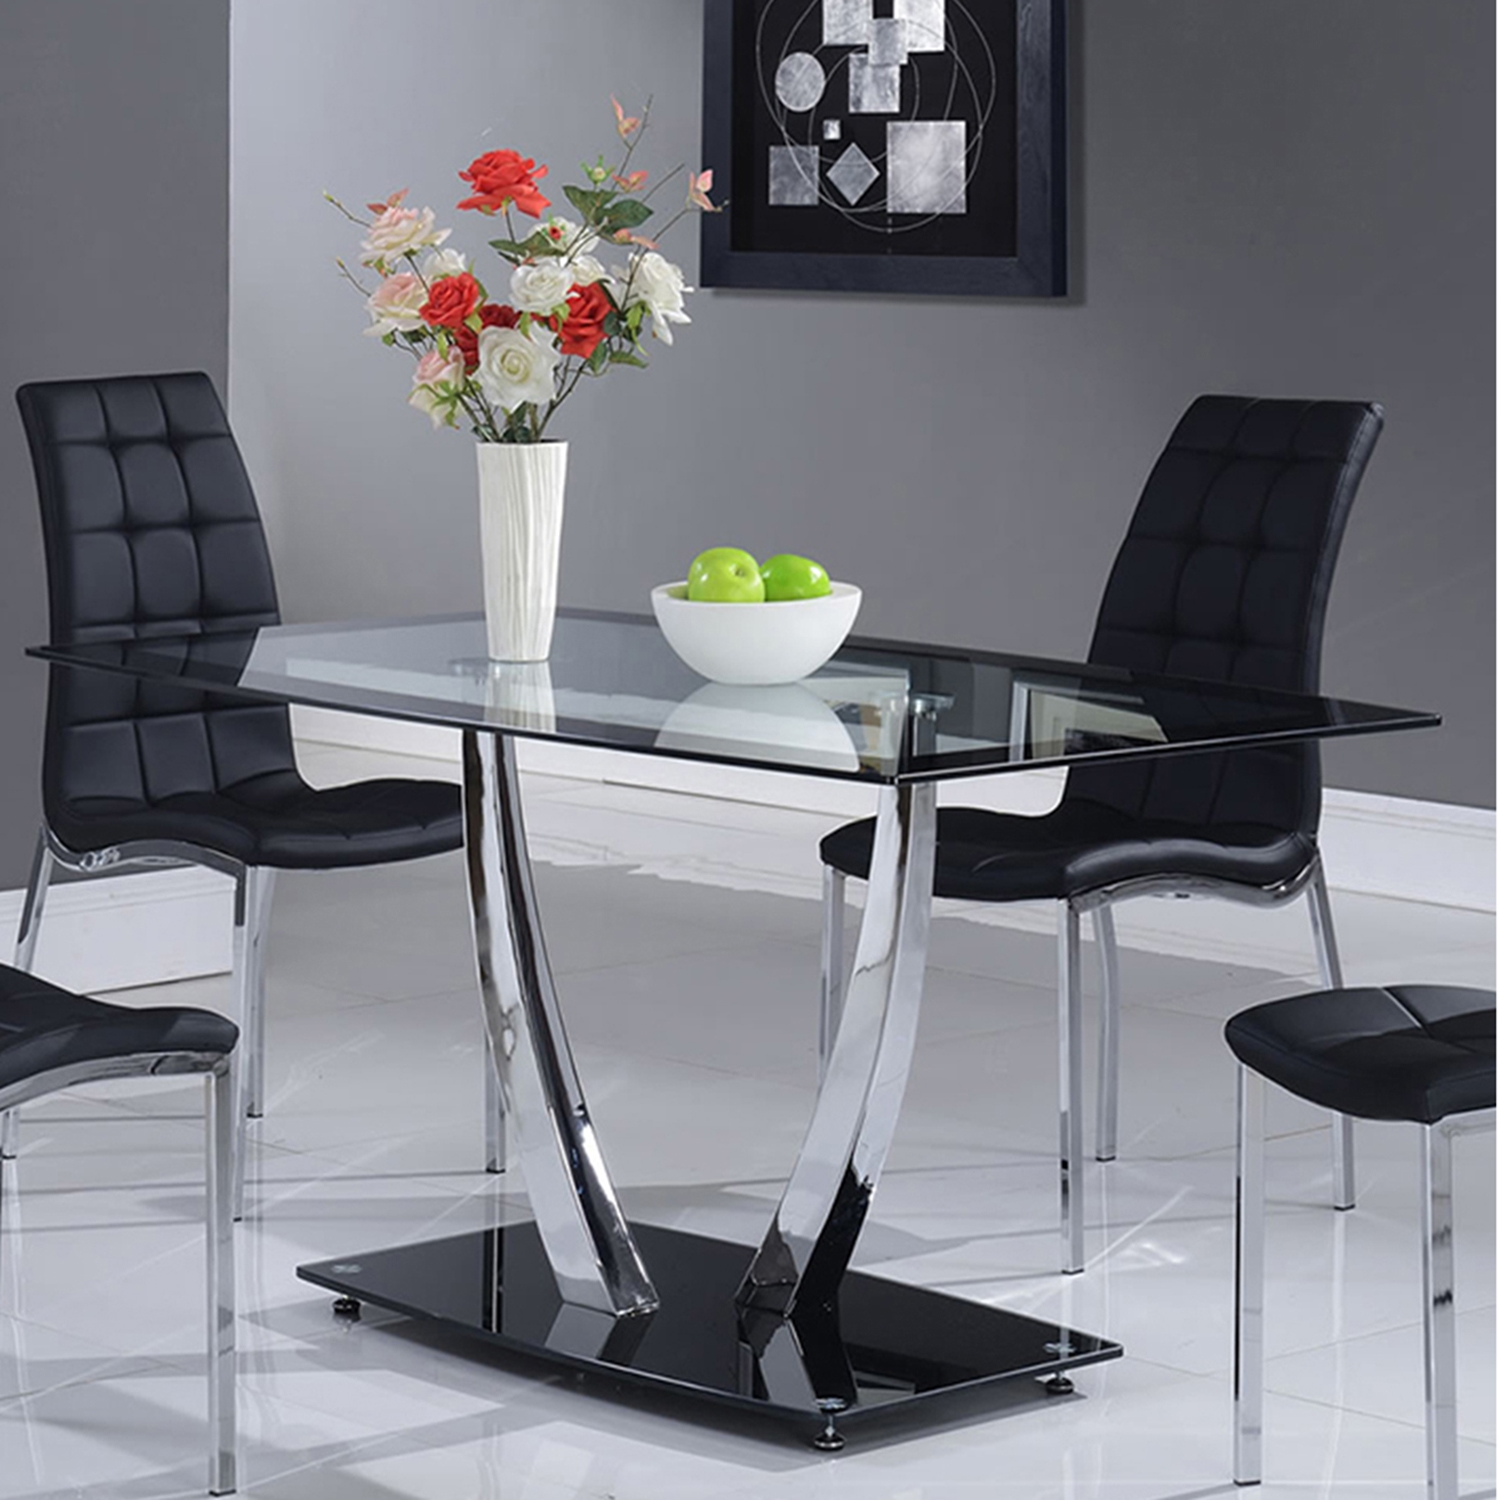 Camila Dining Table Chrome Legs Glass Top Black Base DCG Stores